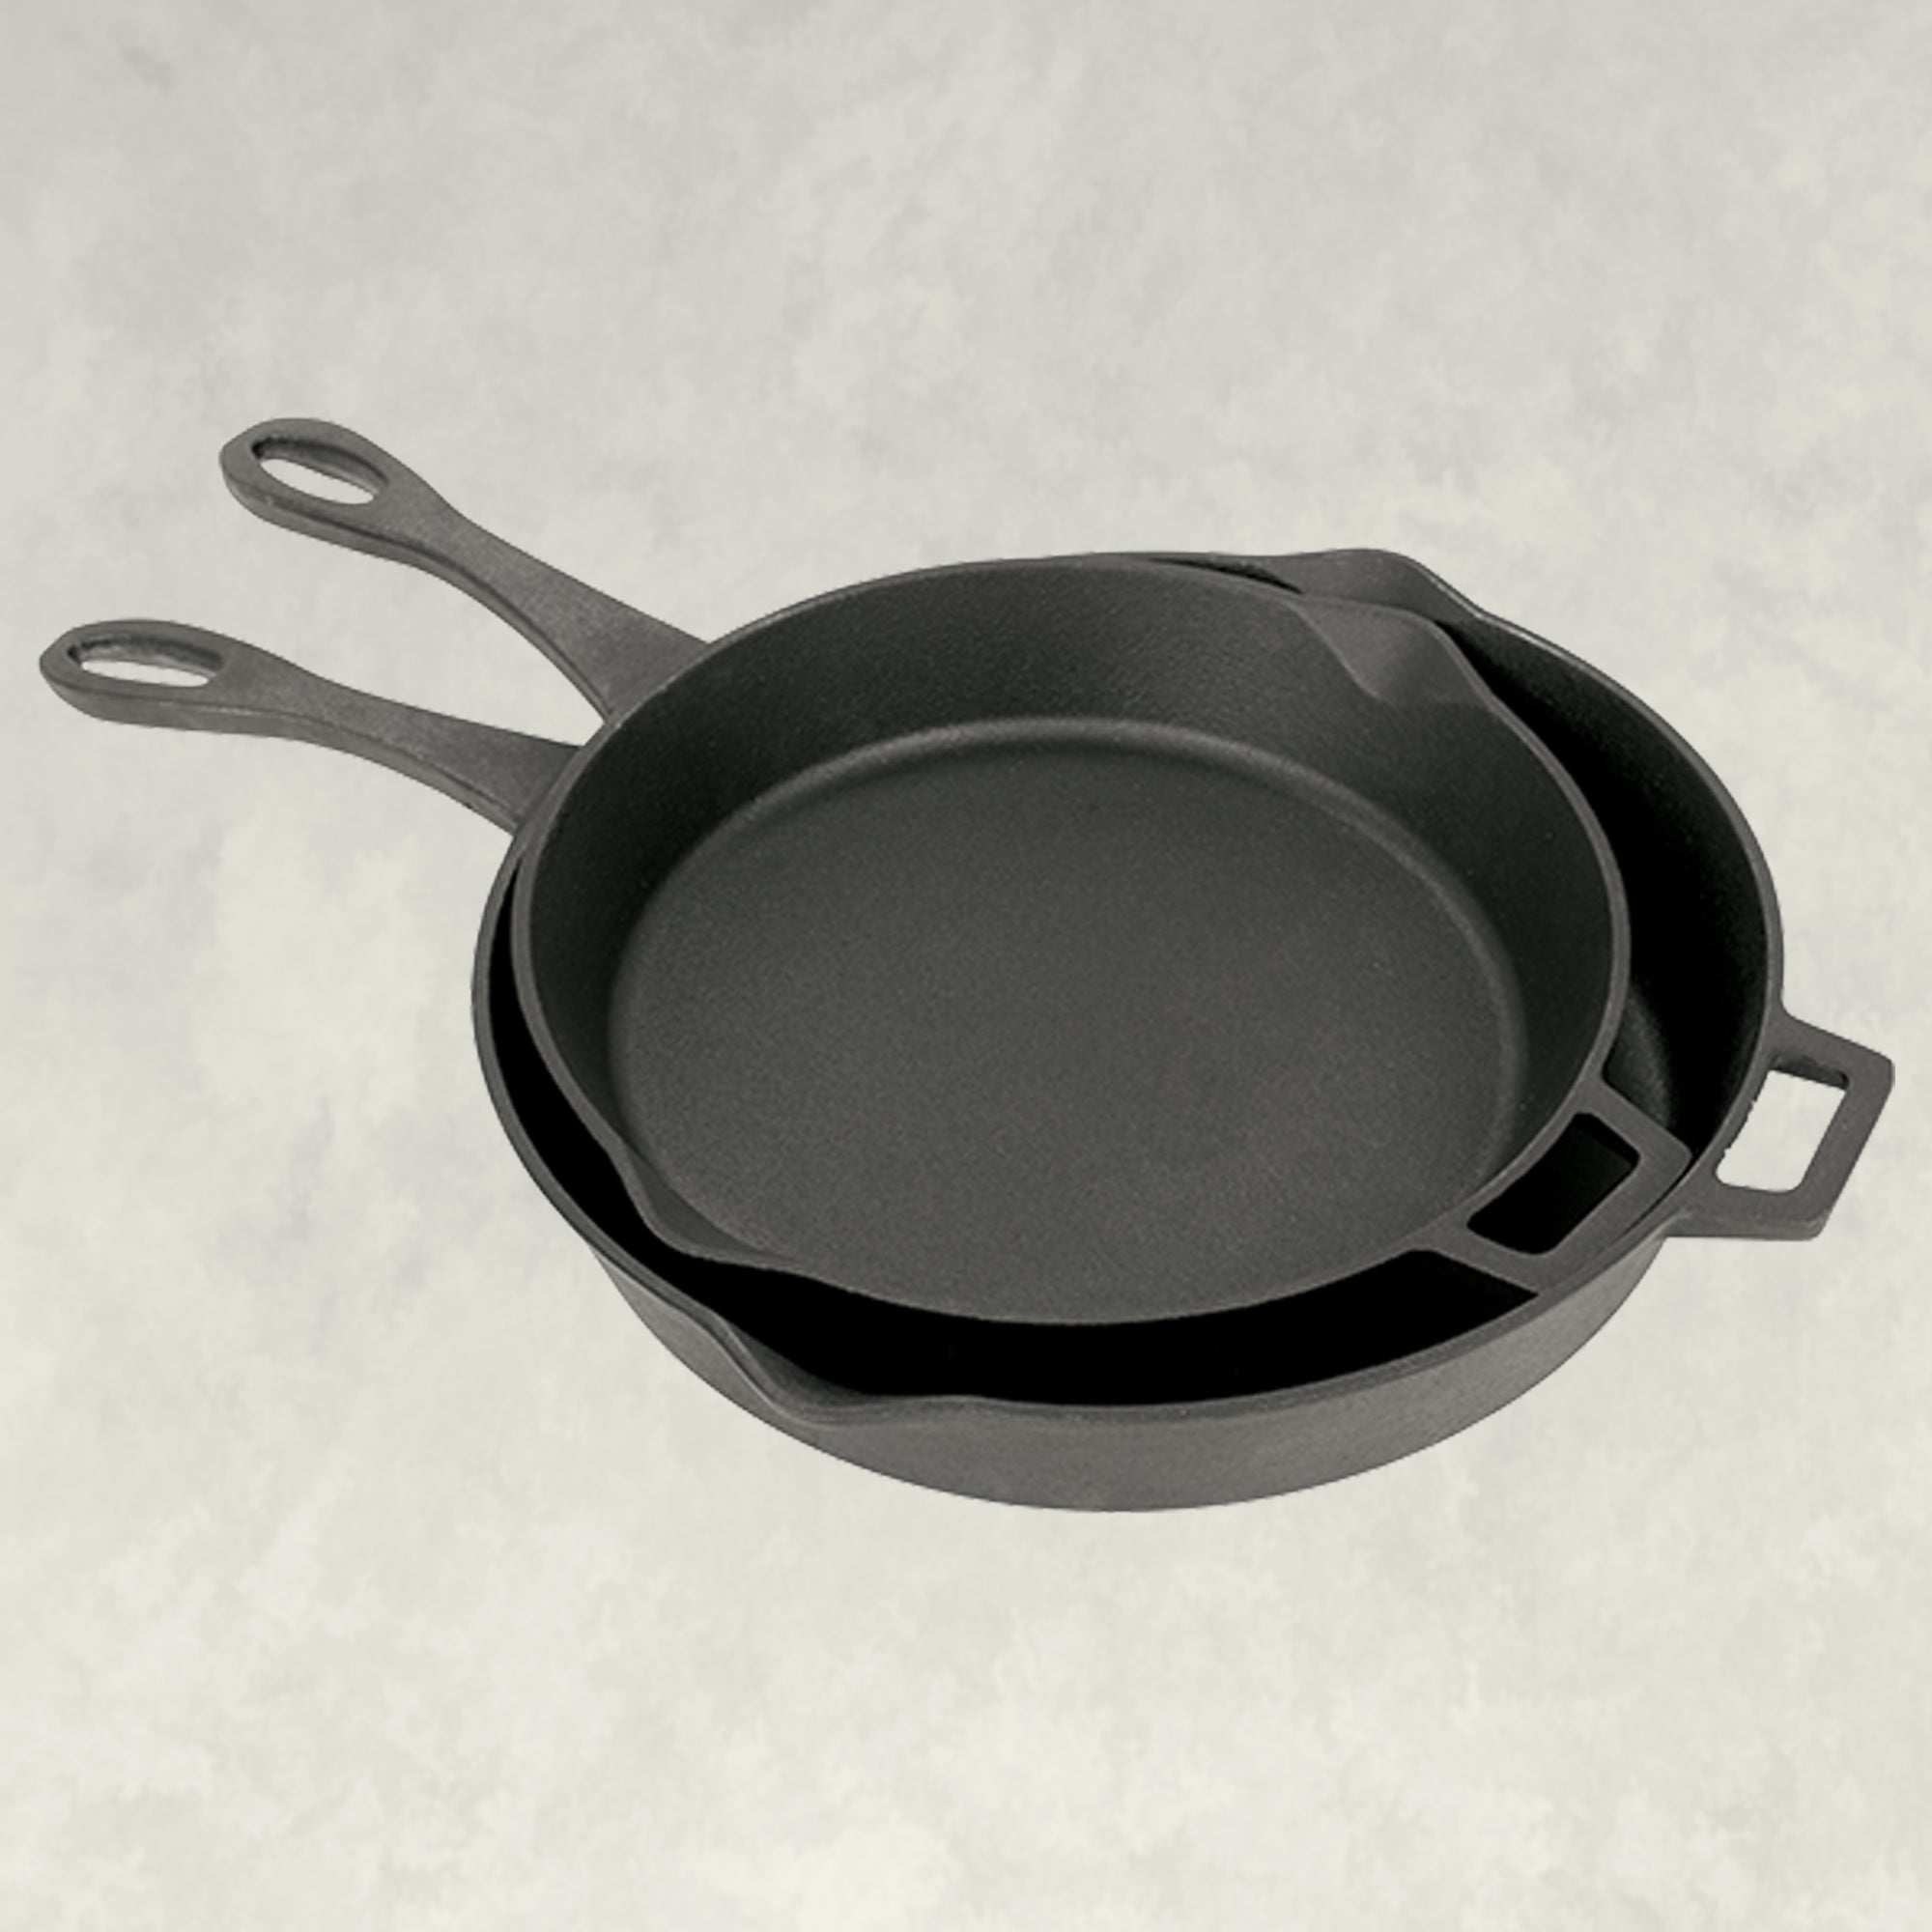 12 and 14-in Skillet Set